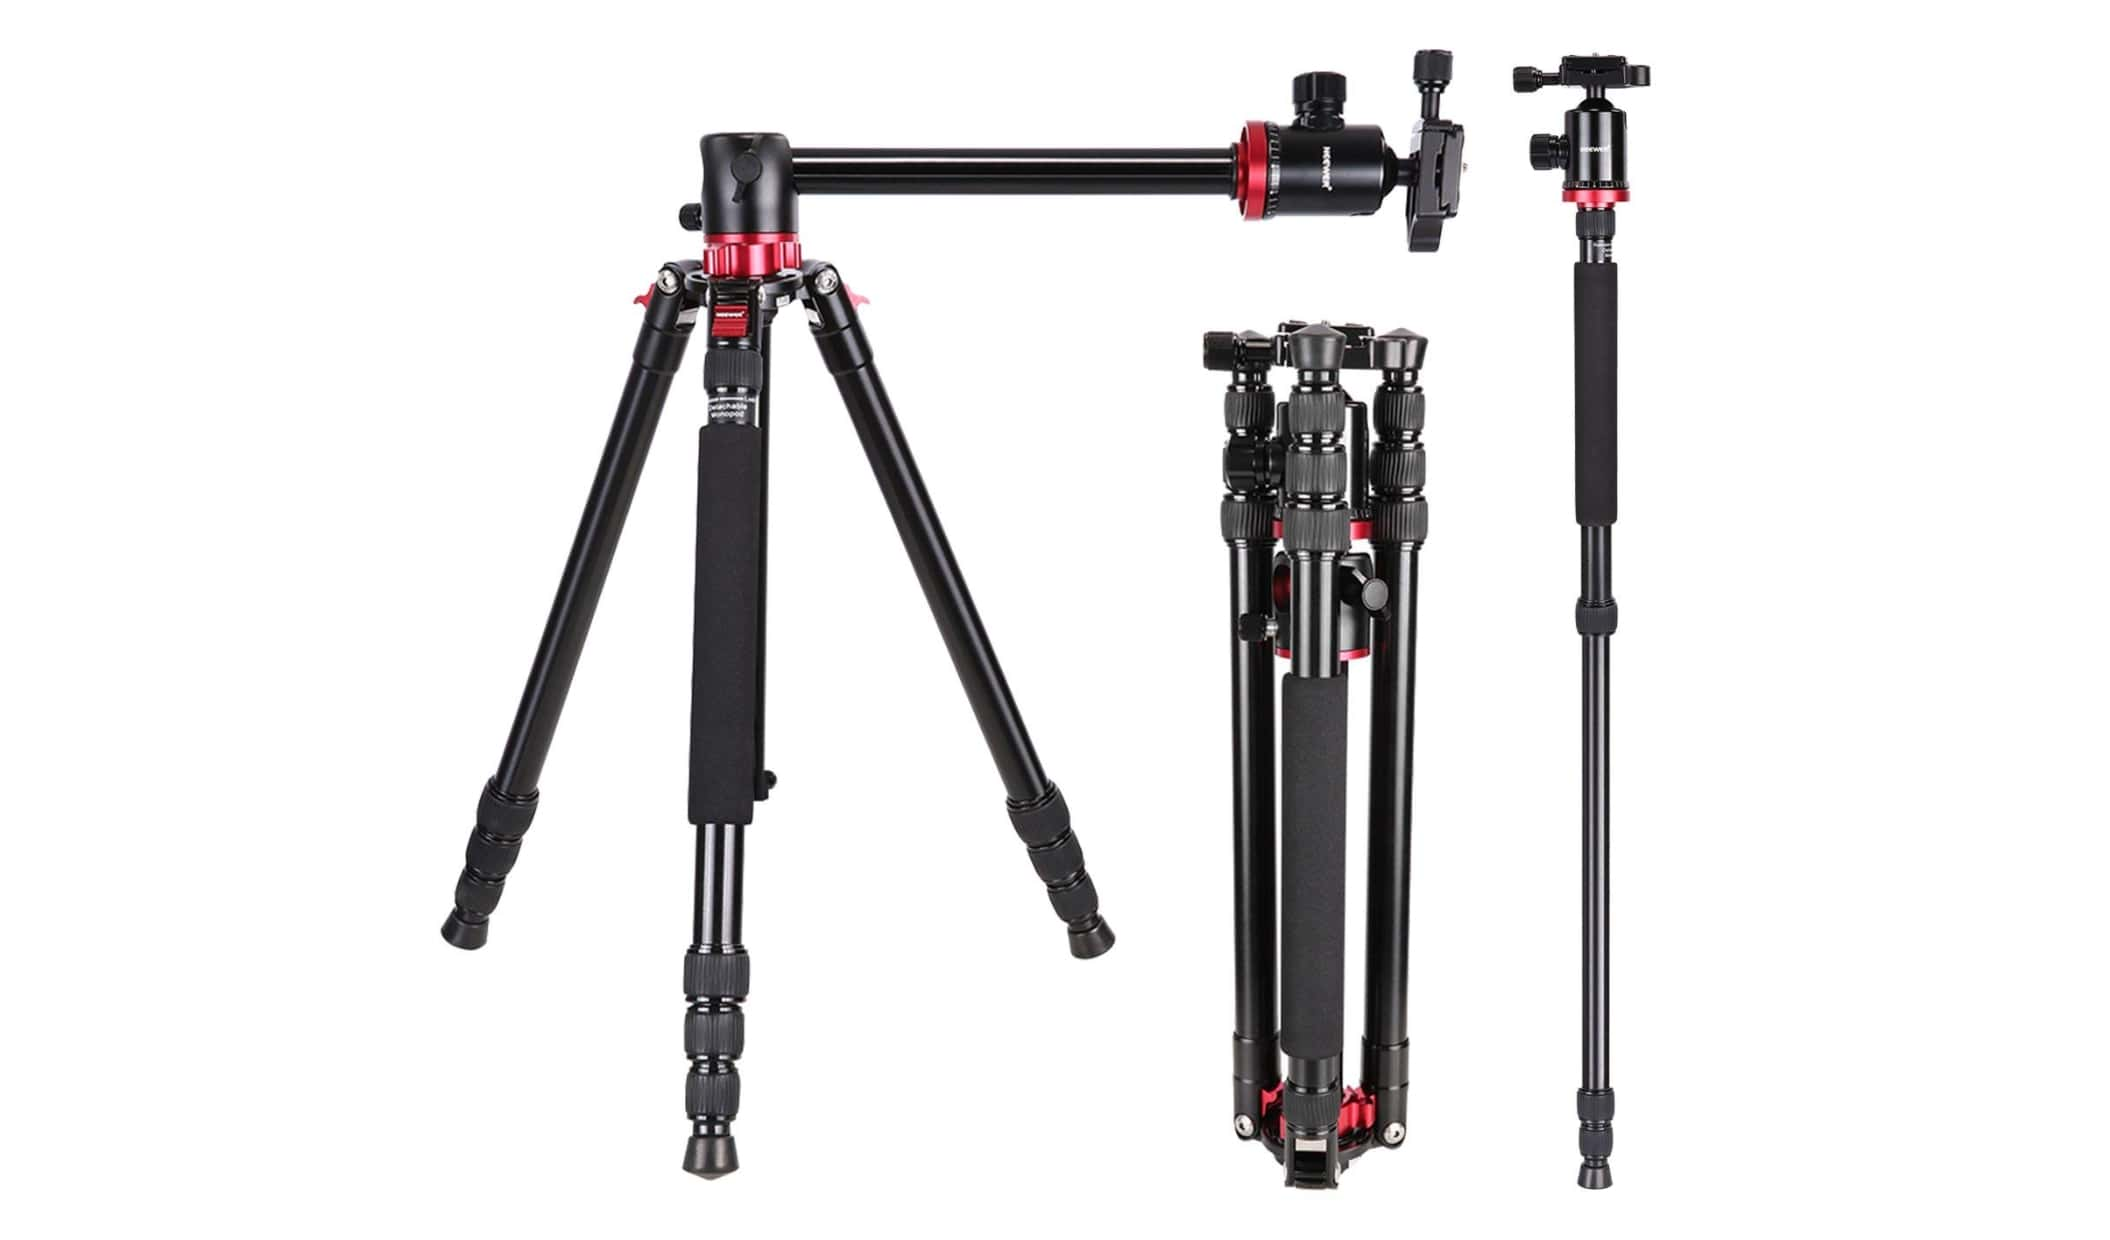 Neewer Tripod Monopod with Rotatable Center Column Review